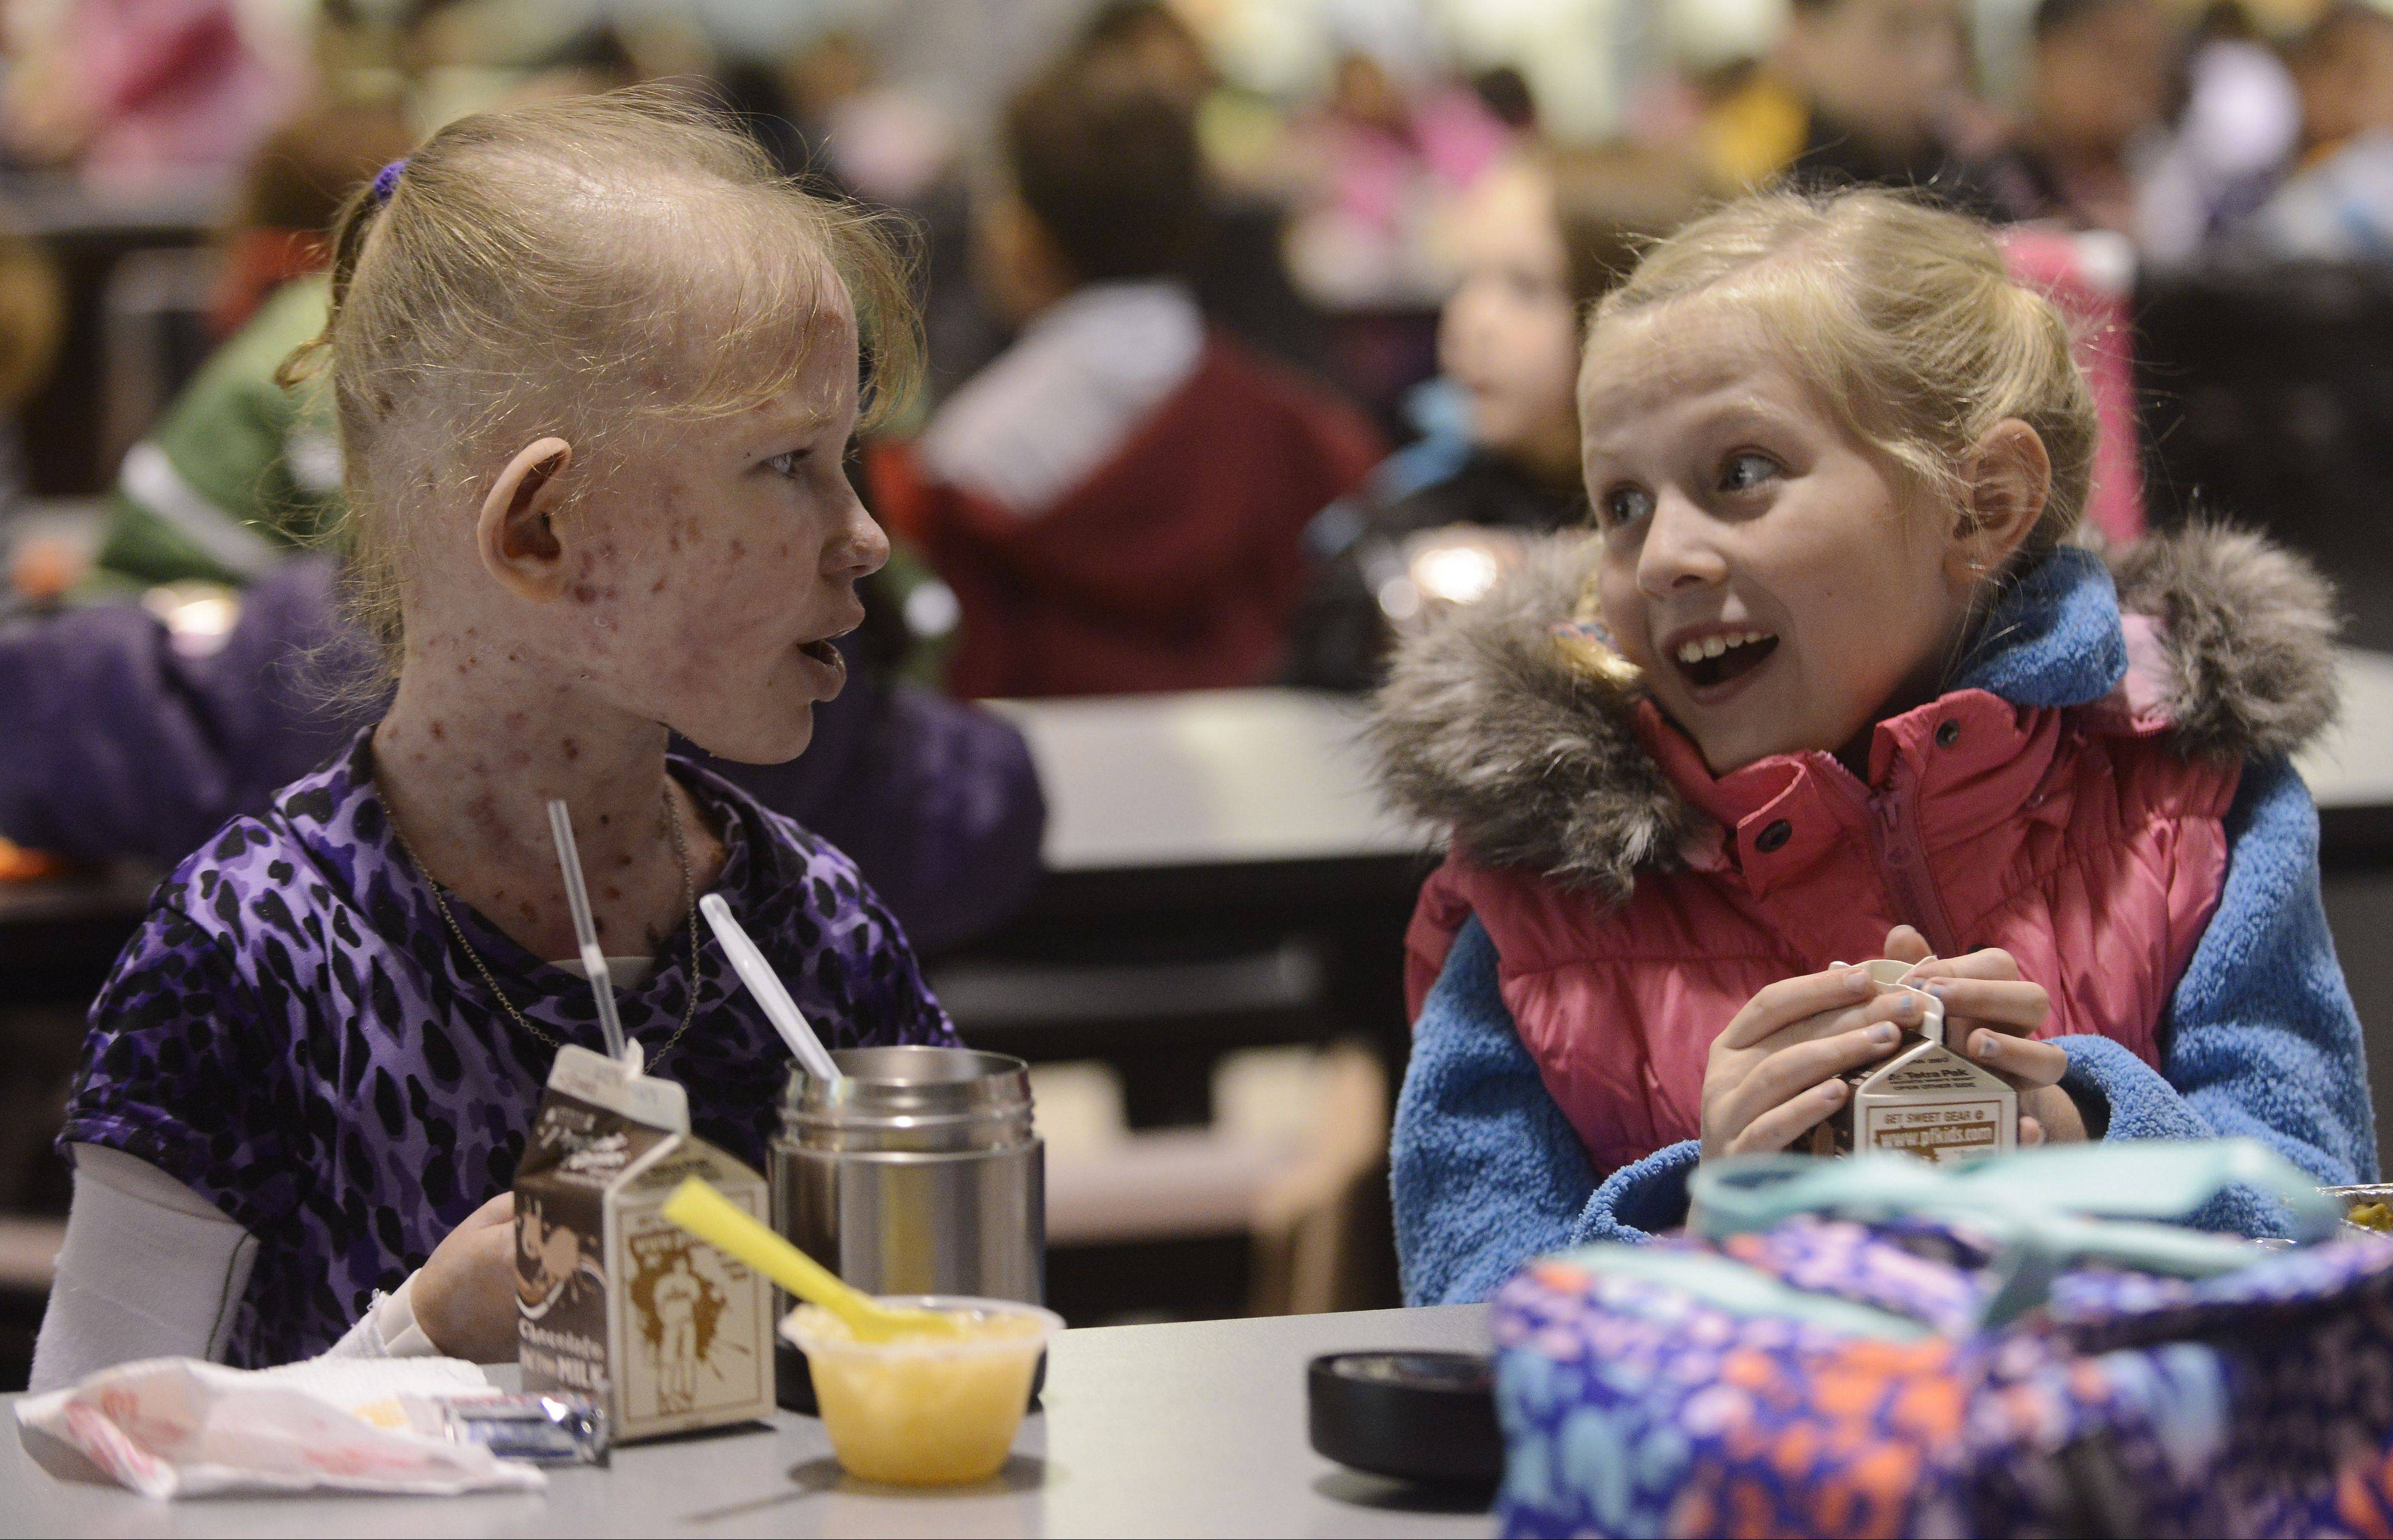 Caroline Provost, left, chats away the lunch hour with friend Cece Gray at Kimball Hill School in Rolling Meadows. Provost has epidermolysis bullosa; she is called a butterfly child because the top layer of her skin is as fragile as a butterfly's wing.